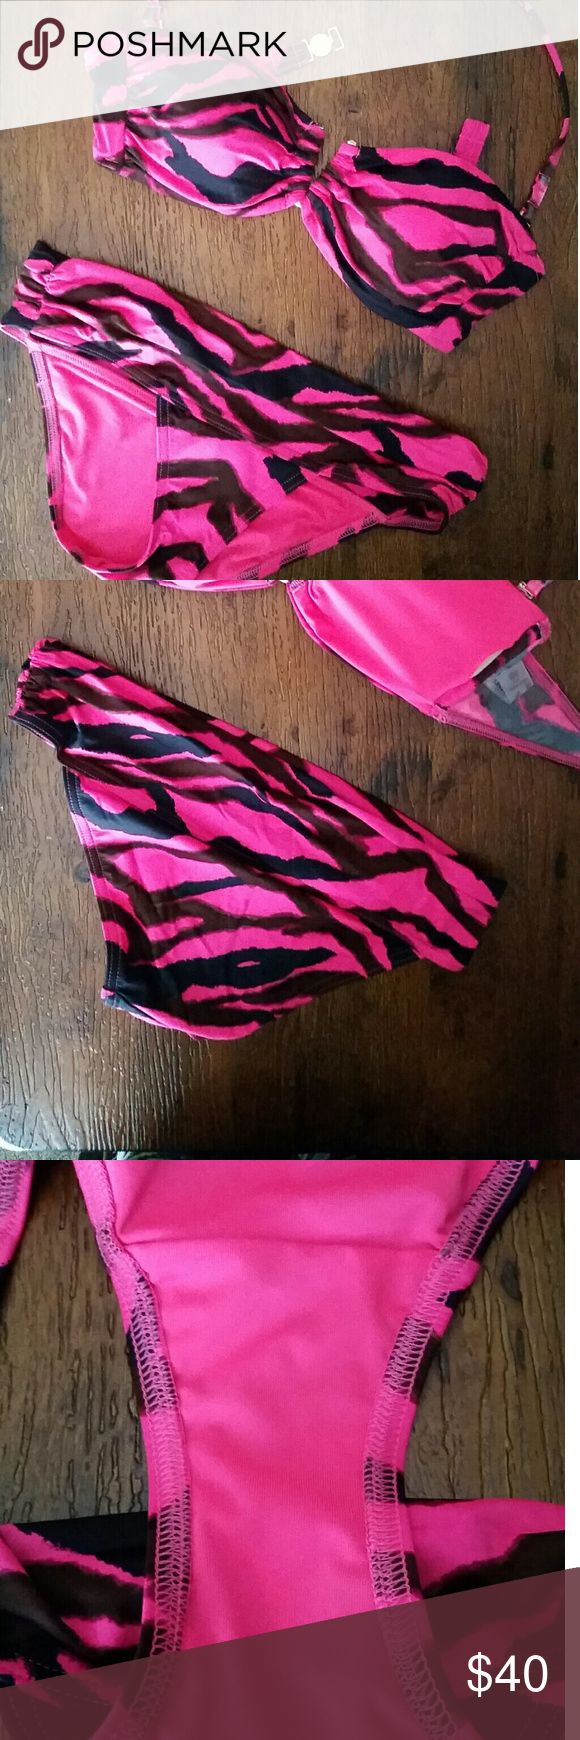 VS Bathing Suit Worn once! Victoria's Secret bathing suit Top: Bandeau - removable neck strap Size small  Bottom: Moderate coverage Low or mid rise Size XS  Hot pink and black zebra print Victoria's Secret Swim Bikinis